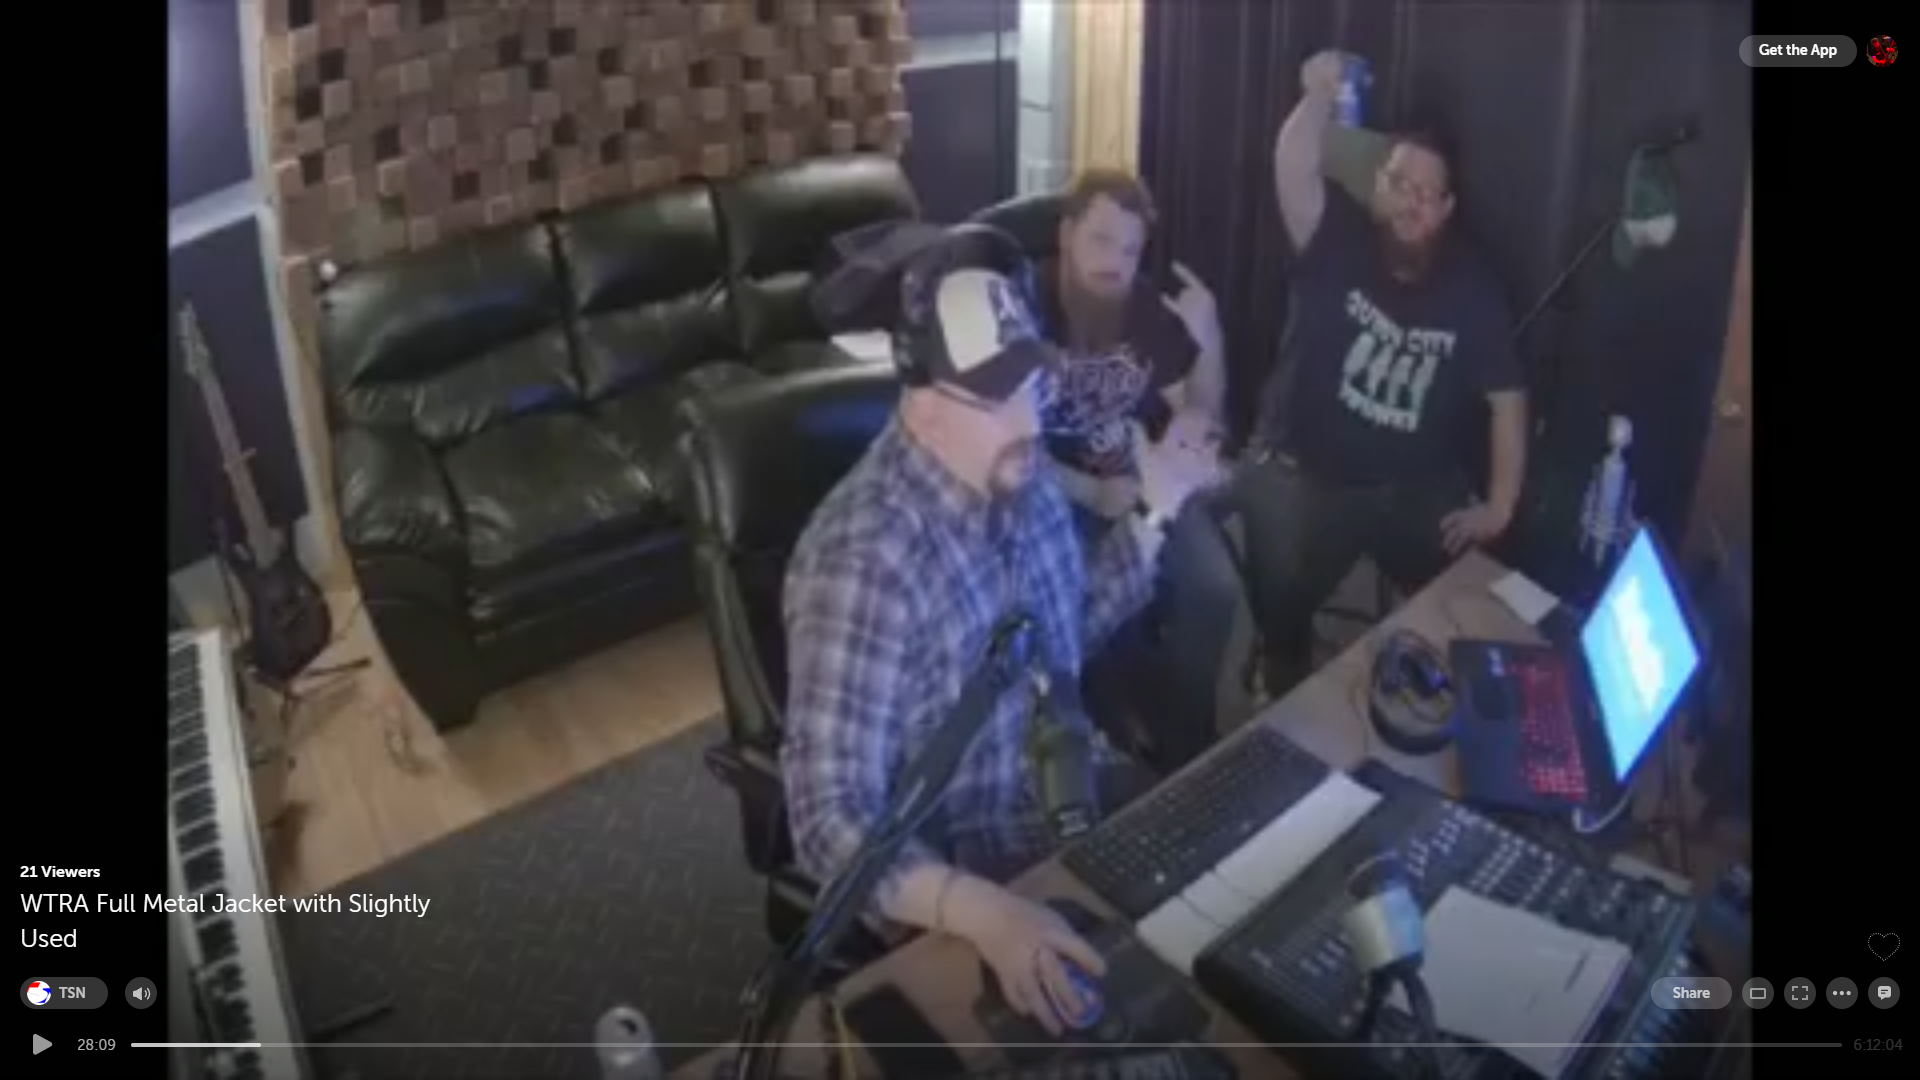 Full Metal JacketEpisode 2 - 4/10/19BluVudu ProductionsMorrisonville, NYStevo & Hodge were guest hosts on Plattsburgh's hottest new punk & metal internet show alongside host John Bradley. Much fun was had and lots of fuckery ensued. The boys were a little hungover the next day…To relive the fuckery copy/paste this link into your browser: https://www.pscp.tv/w/1MnxnvRZmXExO